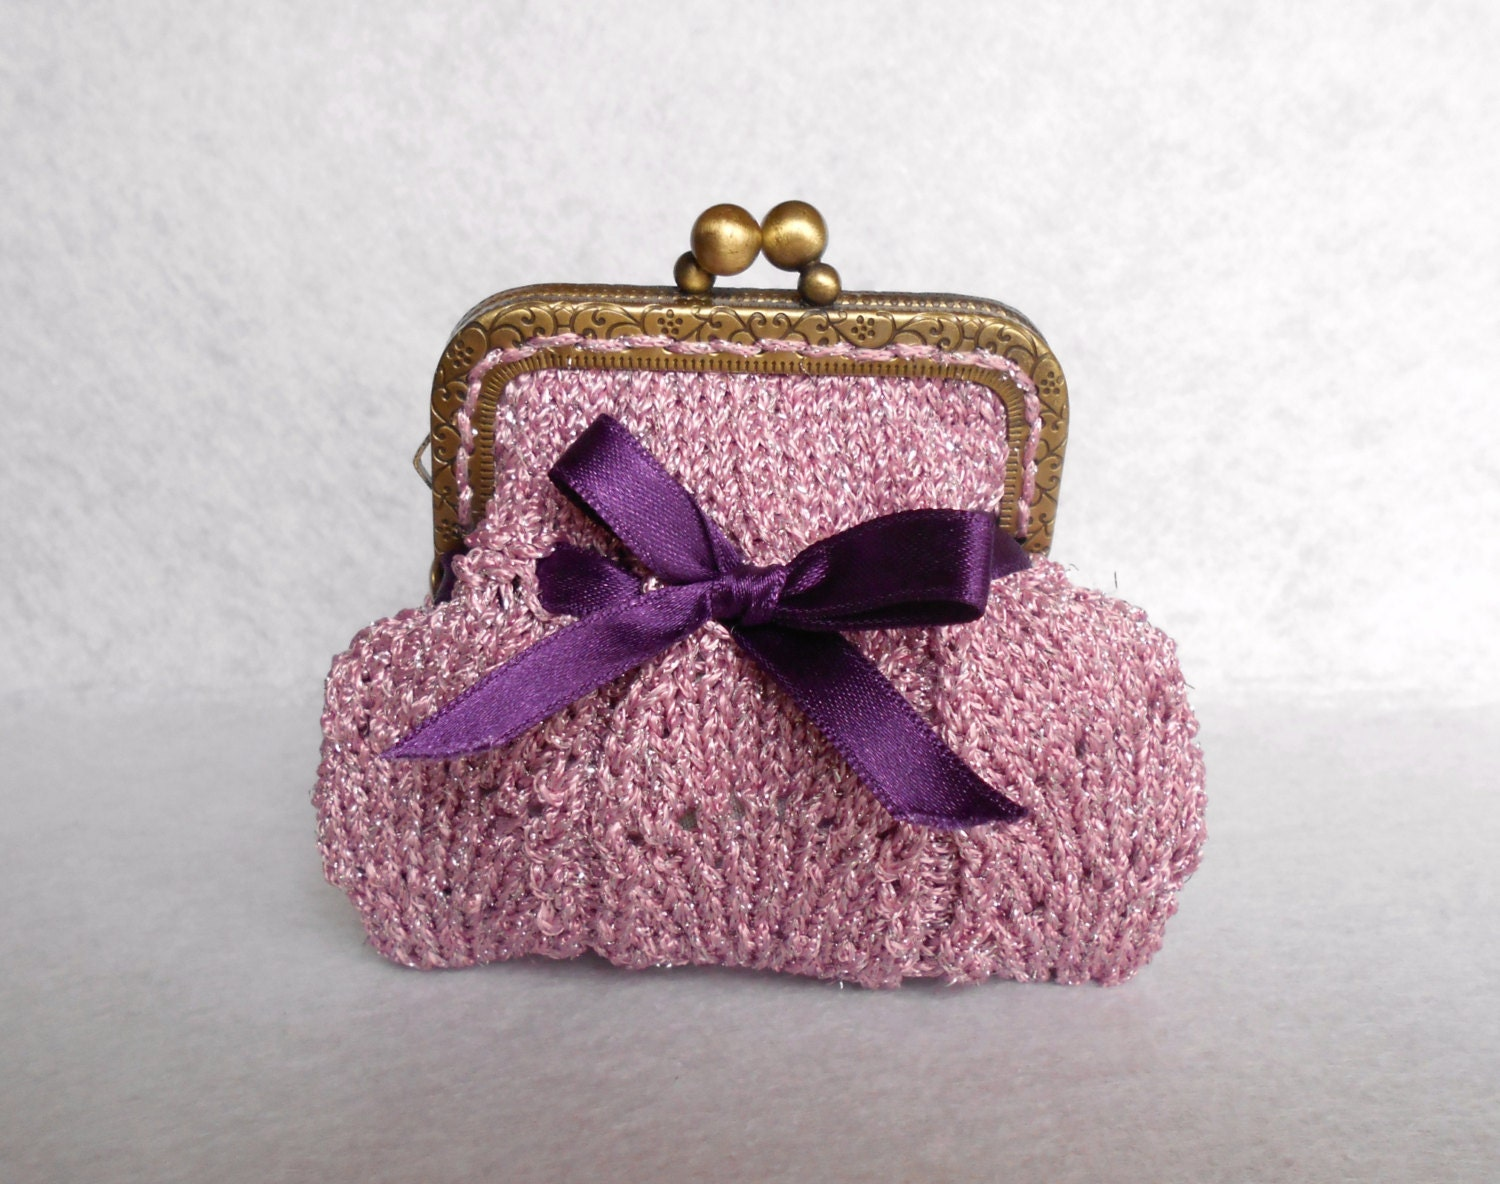 Vintage style coin purse knitted in Fan Flare stitch Metal